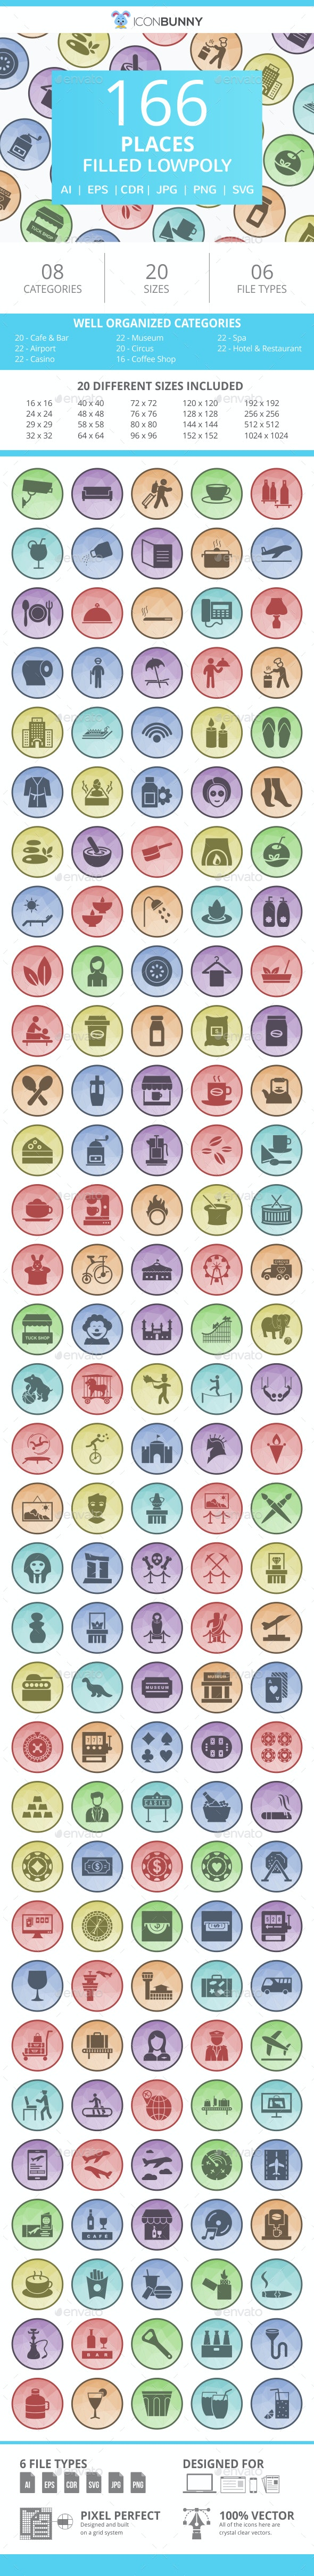 166 Places Filled Low Poly Icons - Icons